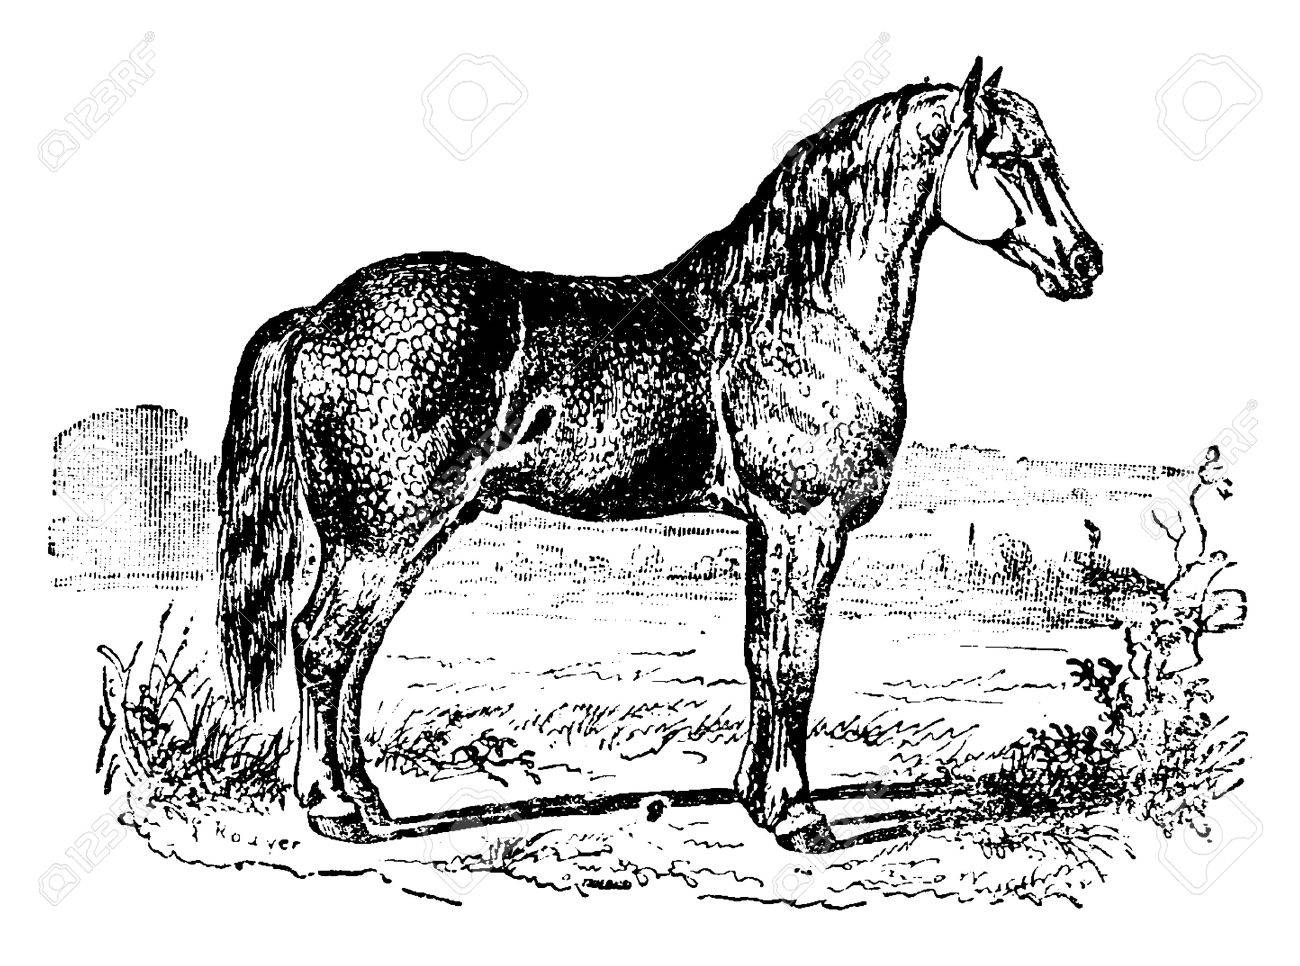 Horse Vintage Engraved Illustration Natural History Of Animals Royalty Free Cliparts Vectors And Stock Illustration Image 41788831